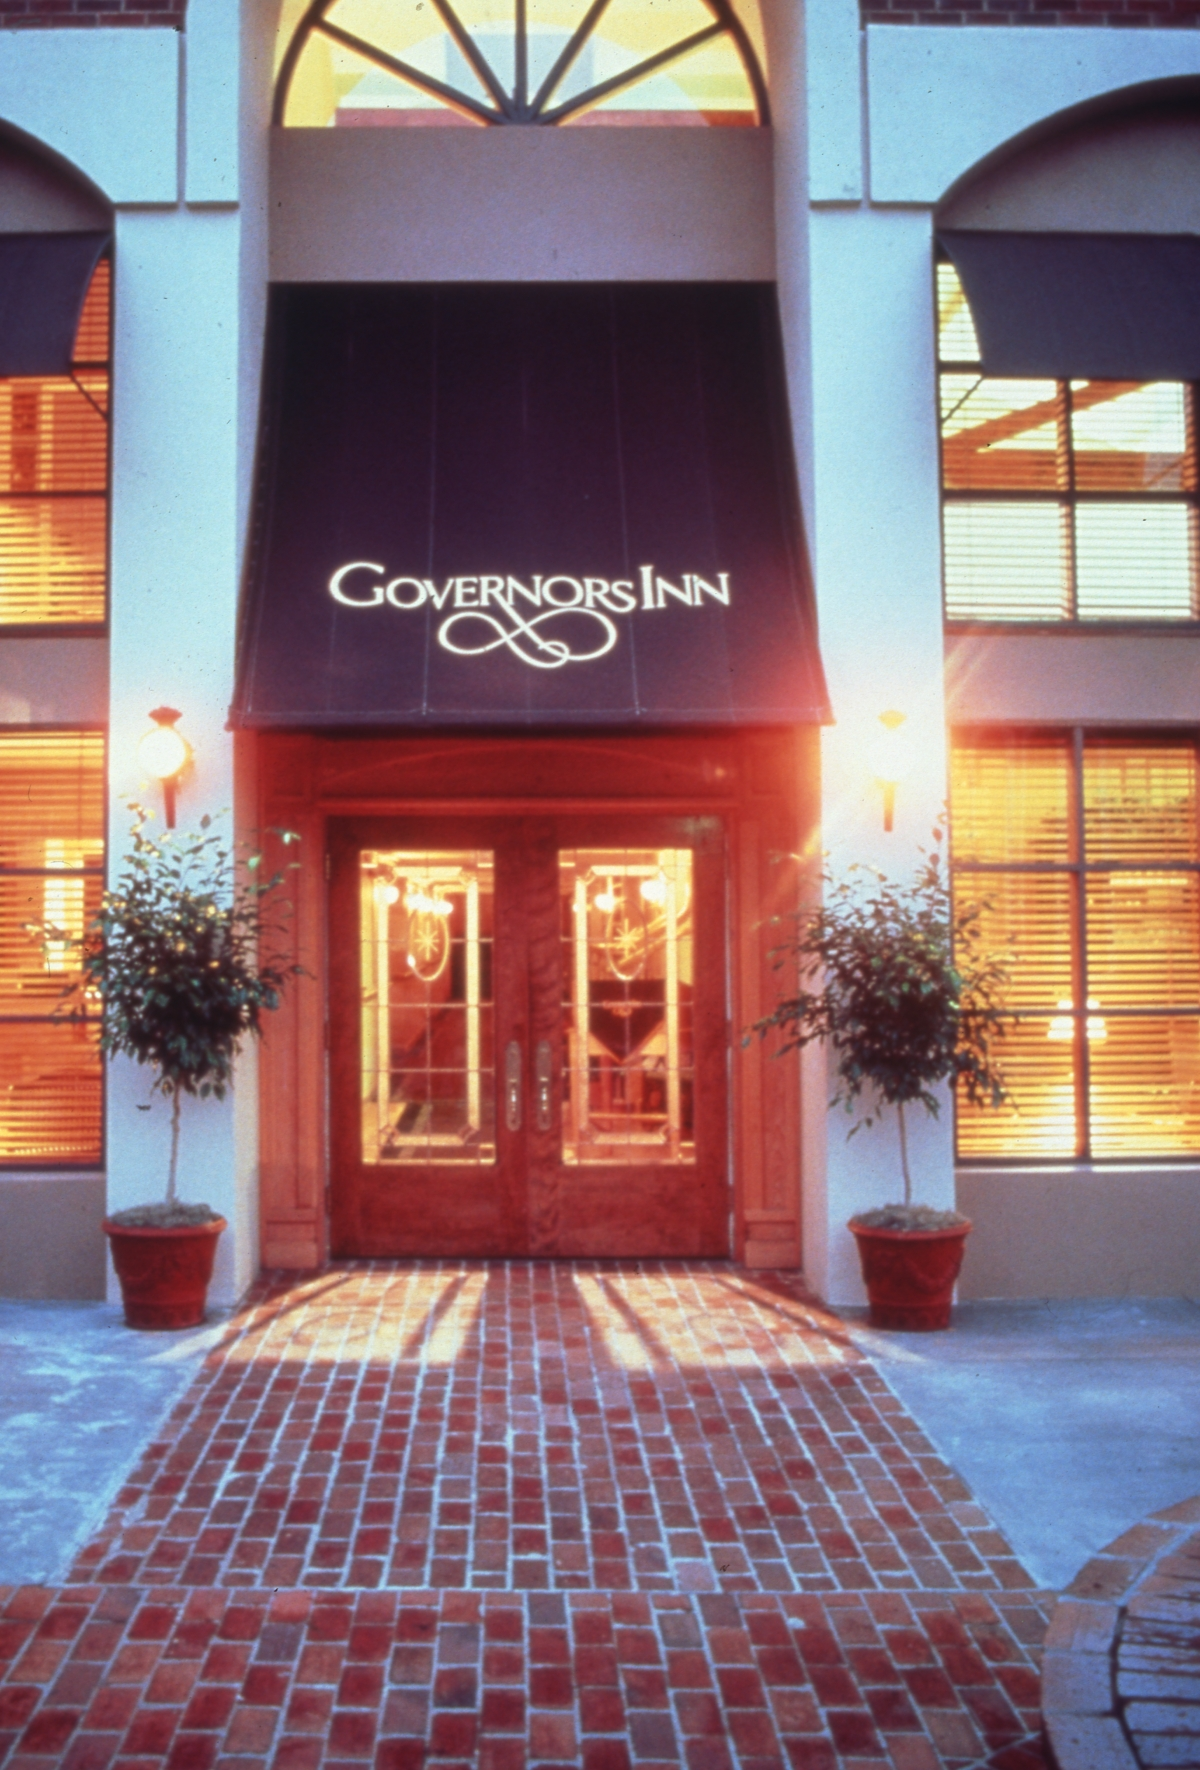 Entrance to the Governors Inn hotel at 209 S. Adams St. in Tallahassee, Florida.